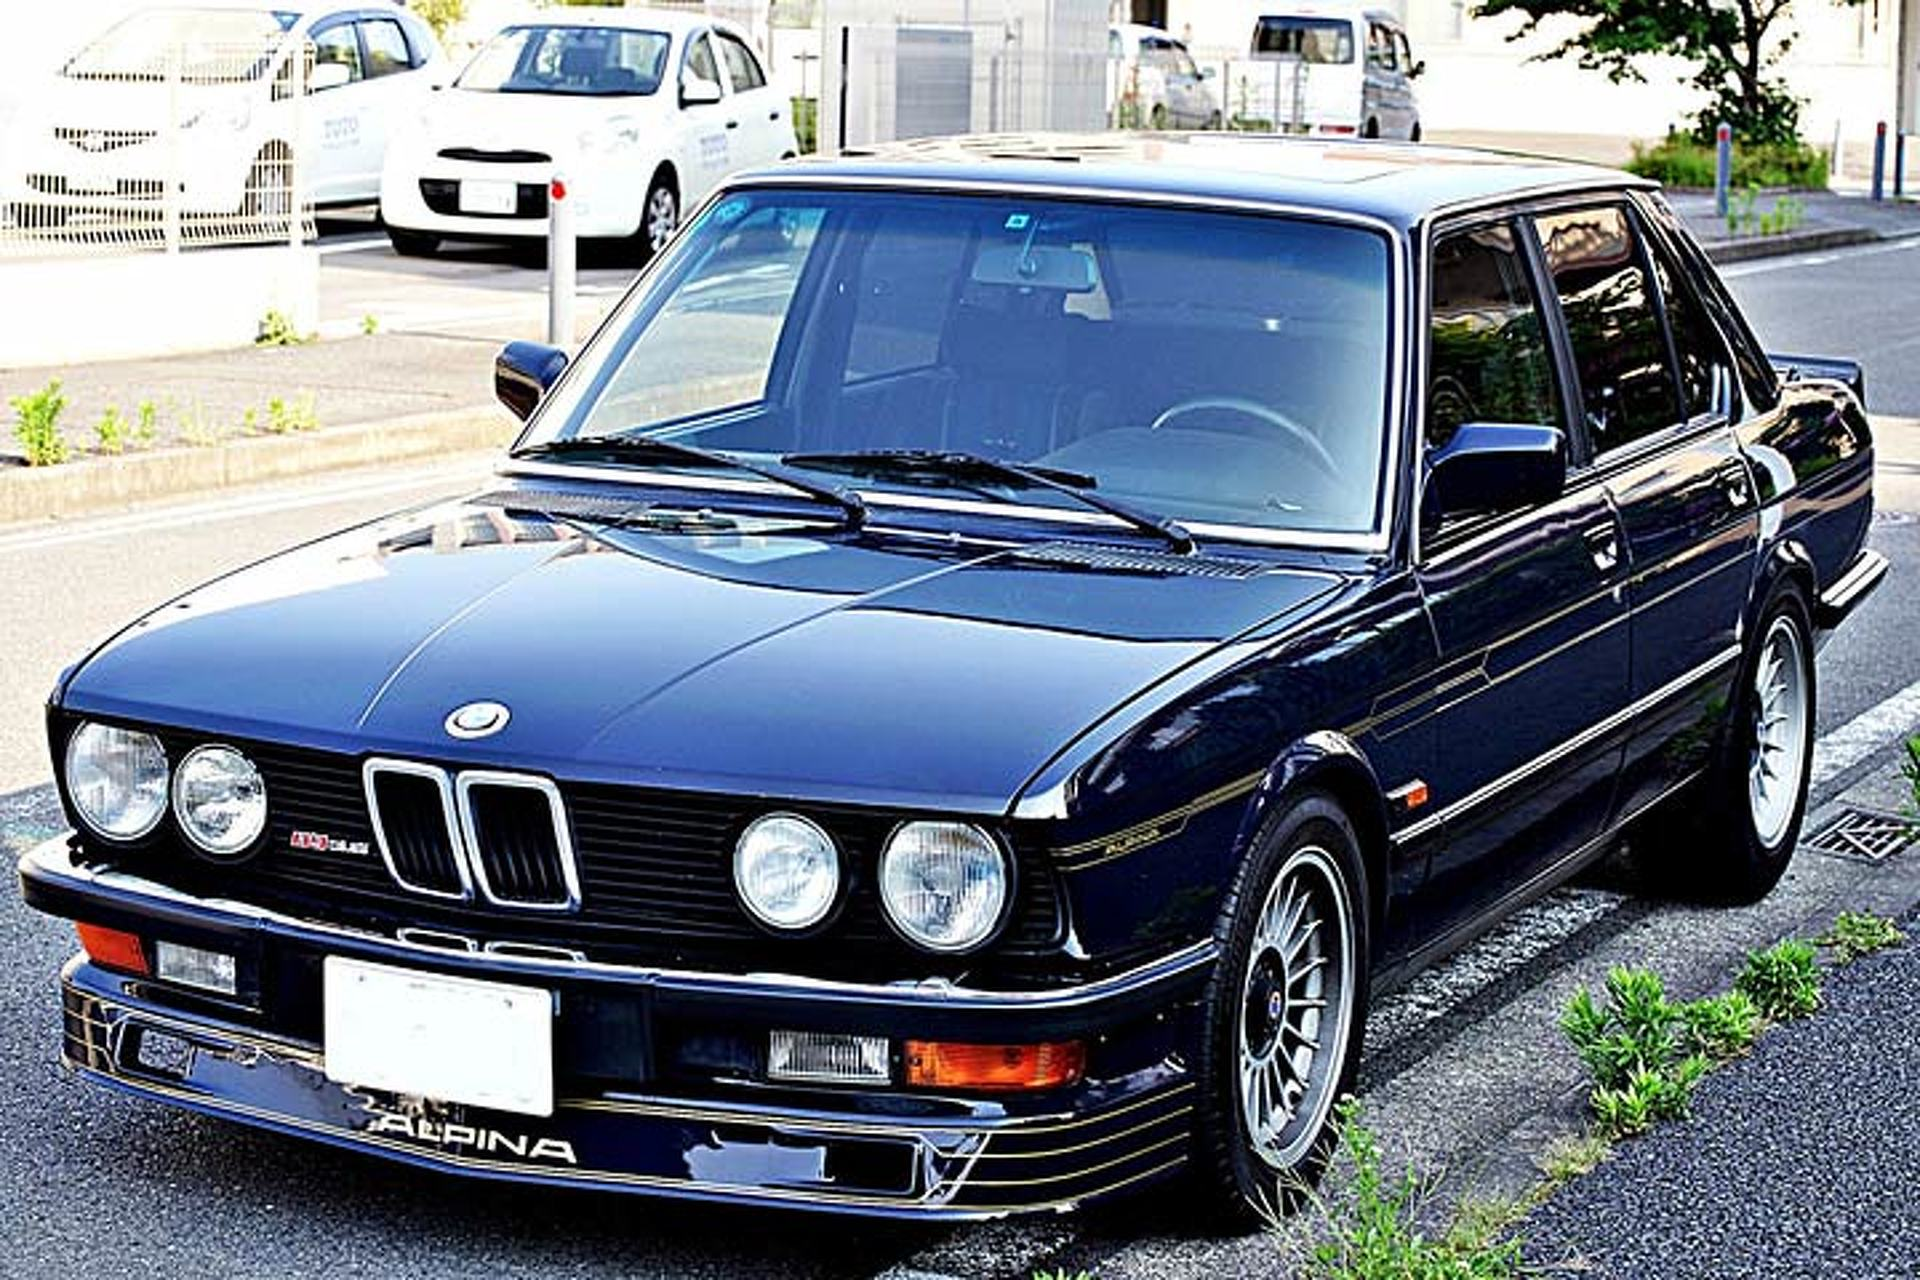 This Alpina B Is A Rare Alternative To The BMW M - Alpina bmw